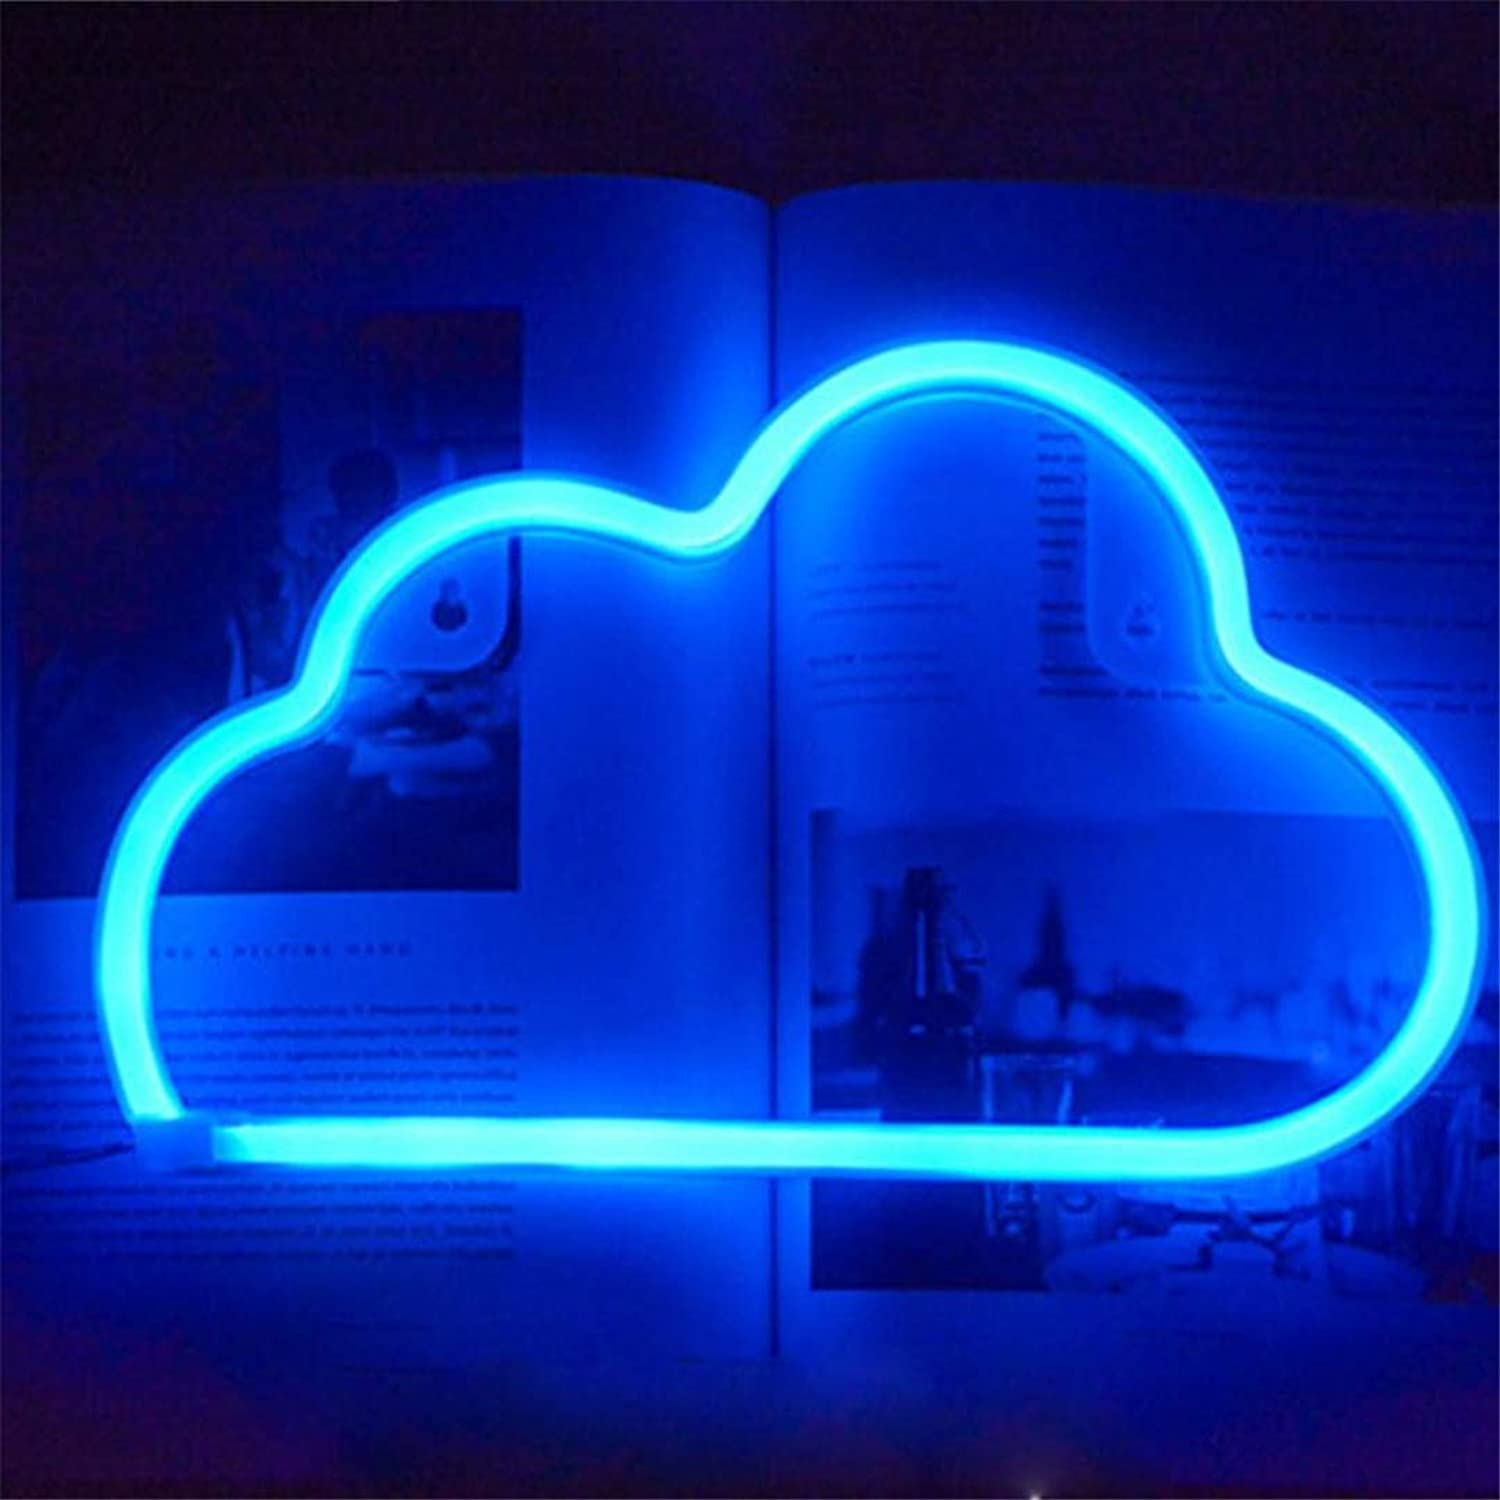 QiXian Ceiling Light Ceiling Lamps Night Lamps ins Stars Neon Clouds Han Mai Girl Heart Gift Girls Room Decoration Letter Lights Spring Festival Layout